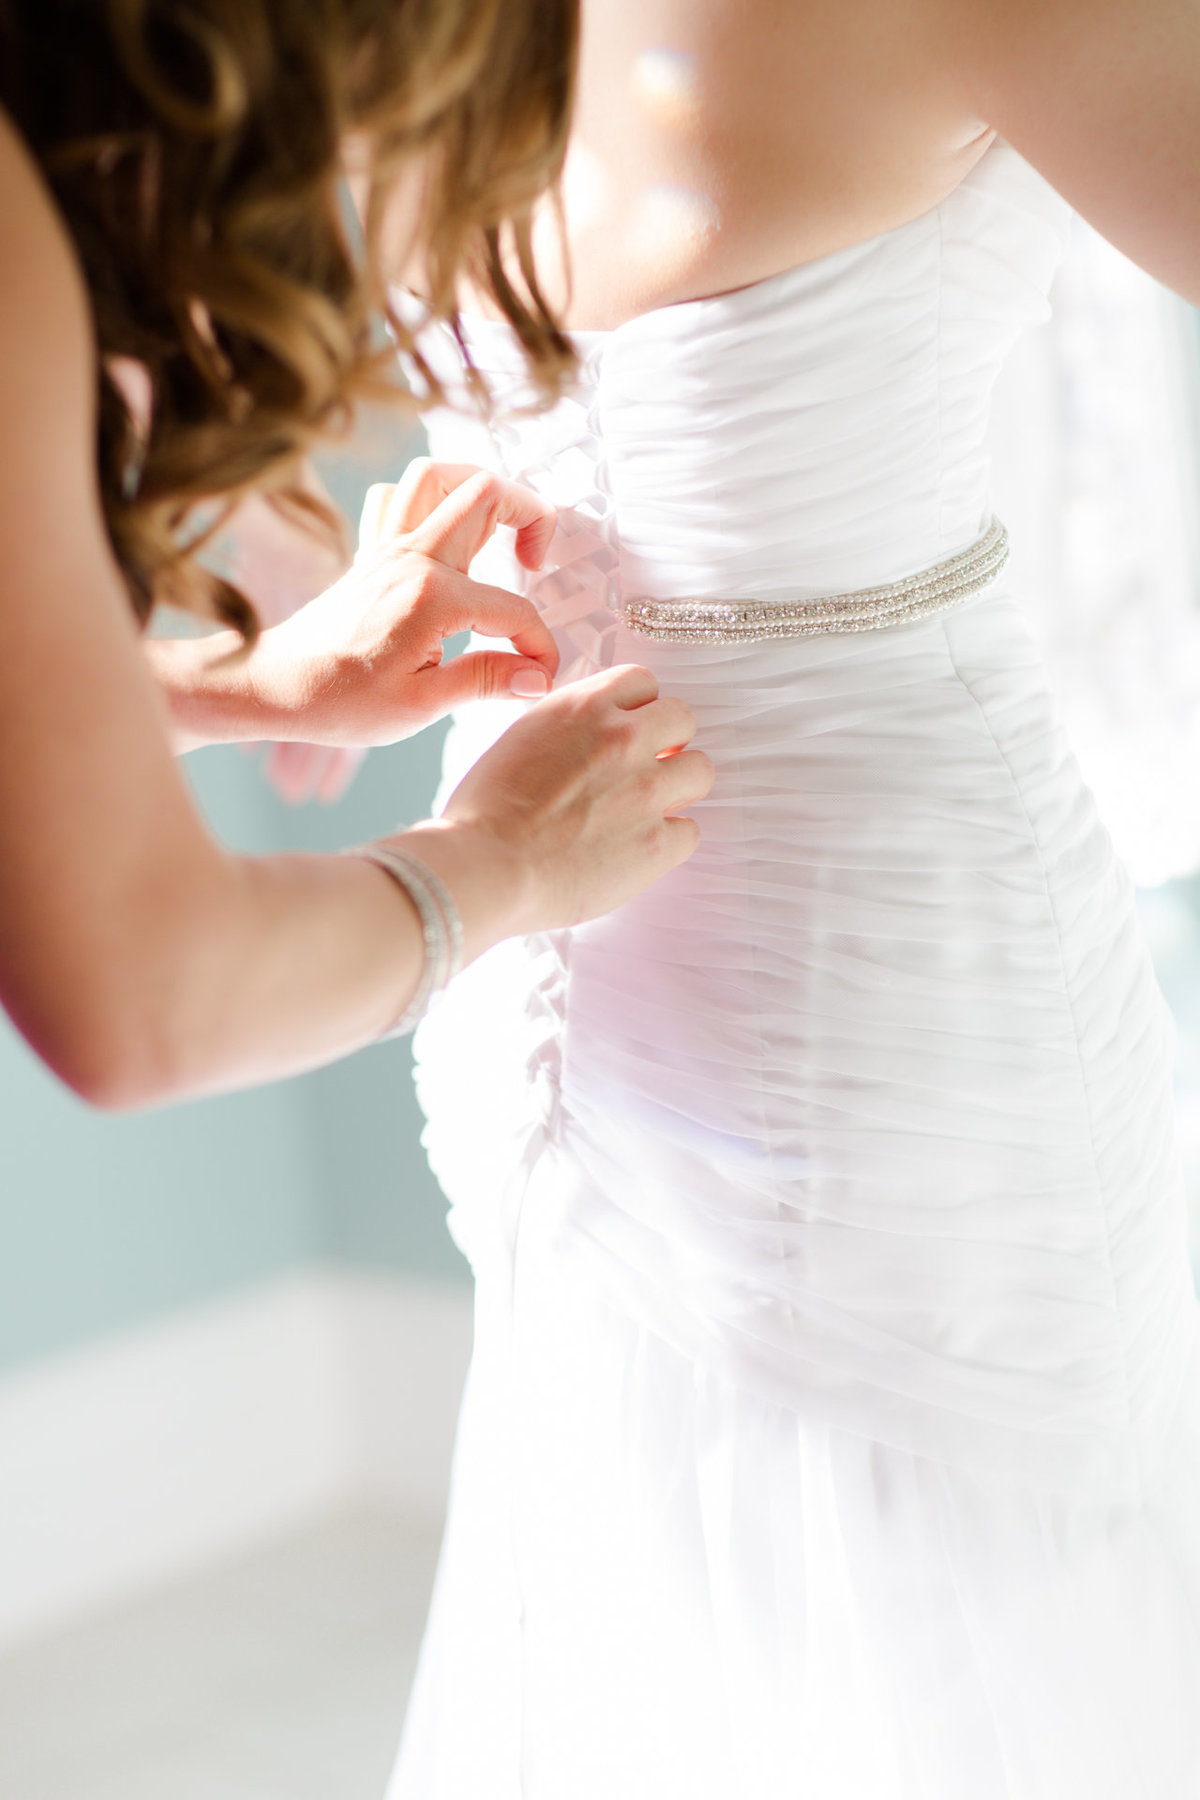 Maid of honor helps bride put on her dress in the bridal suite at villa de amore by matty fran photography